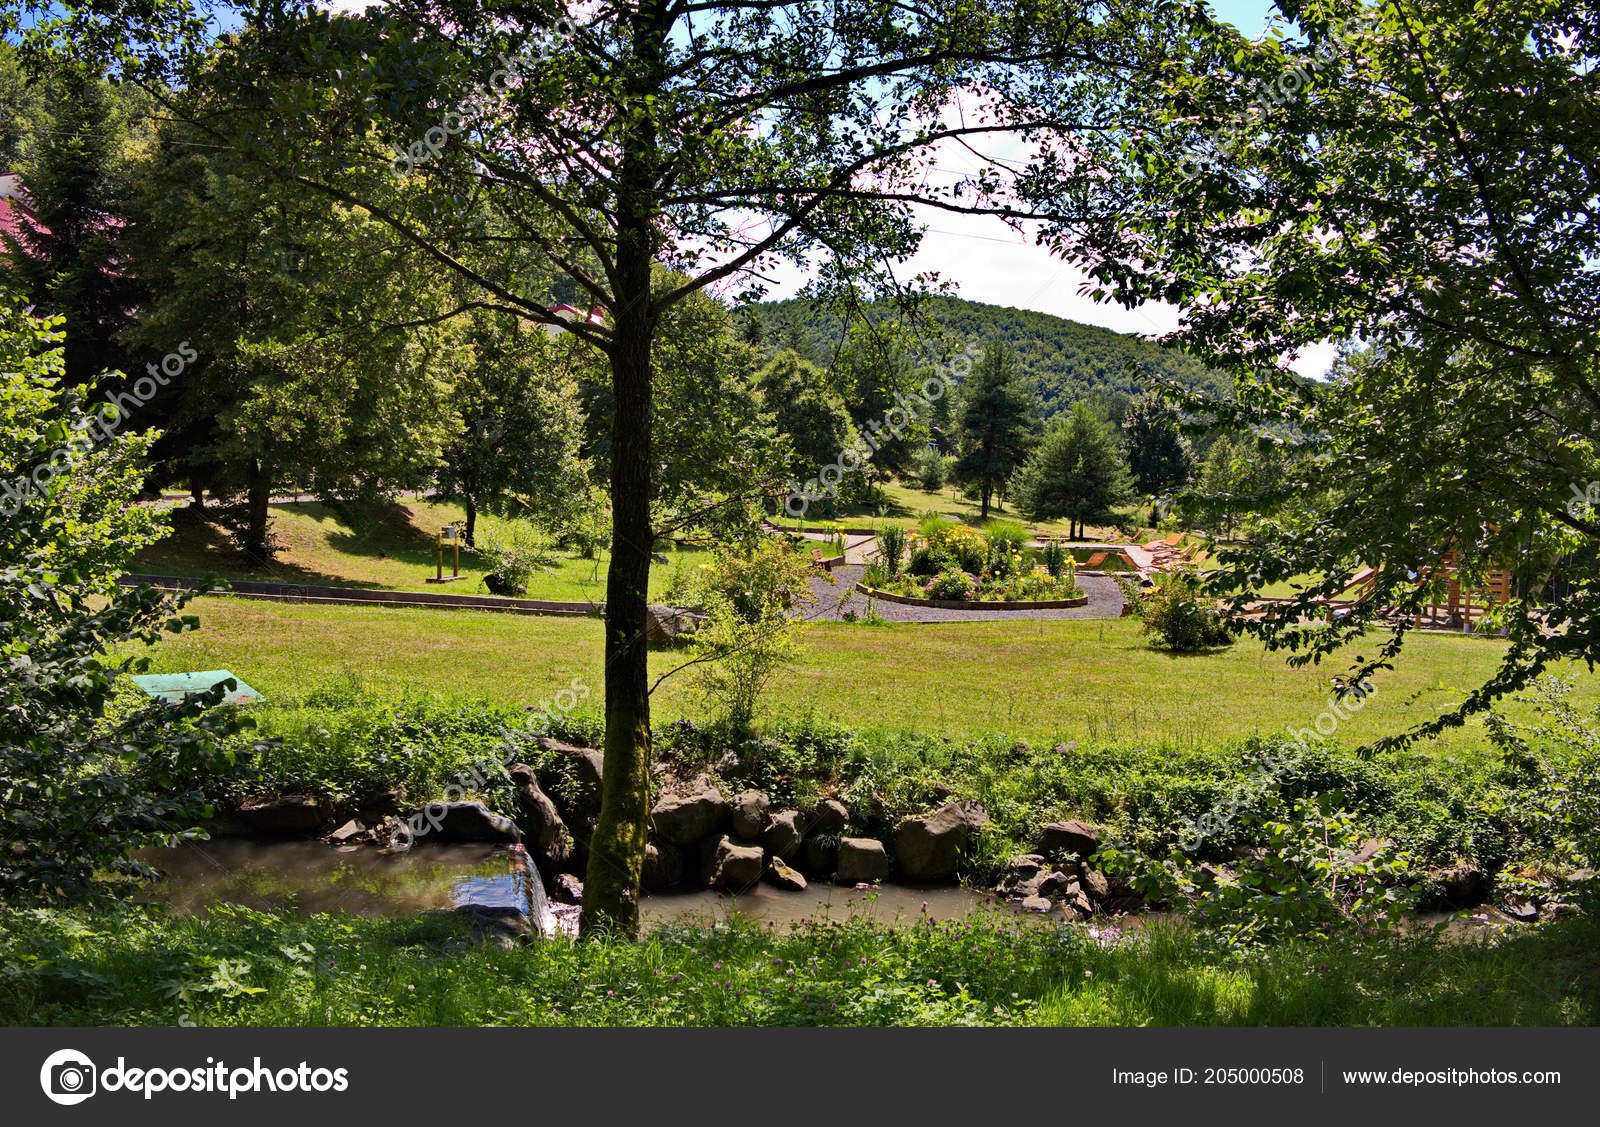 Decorative Stone River Rapids On The Background Of The